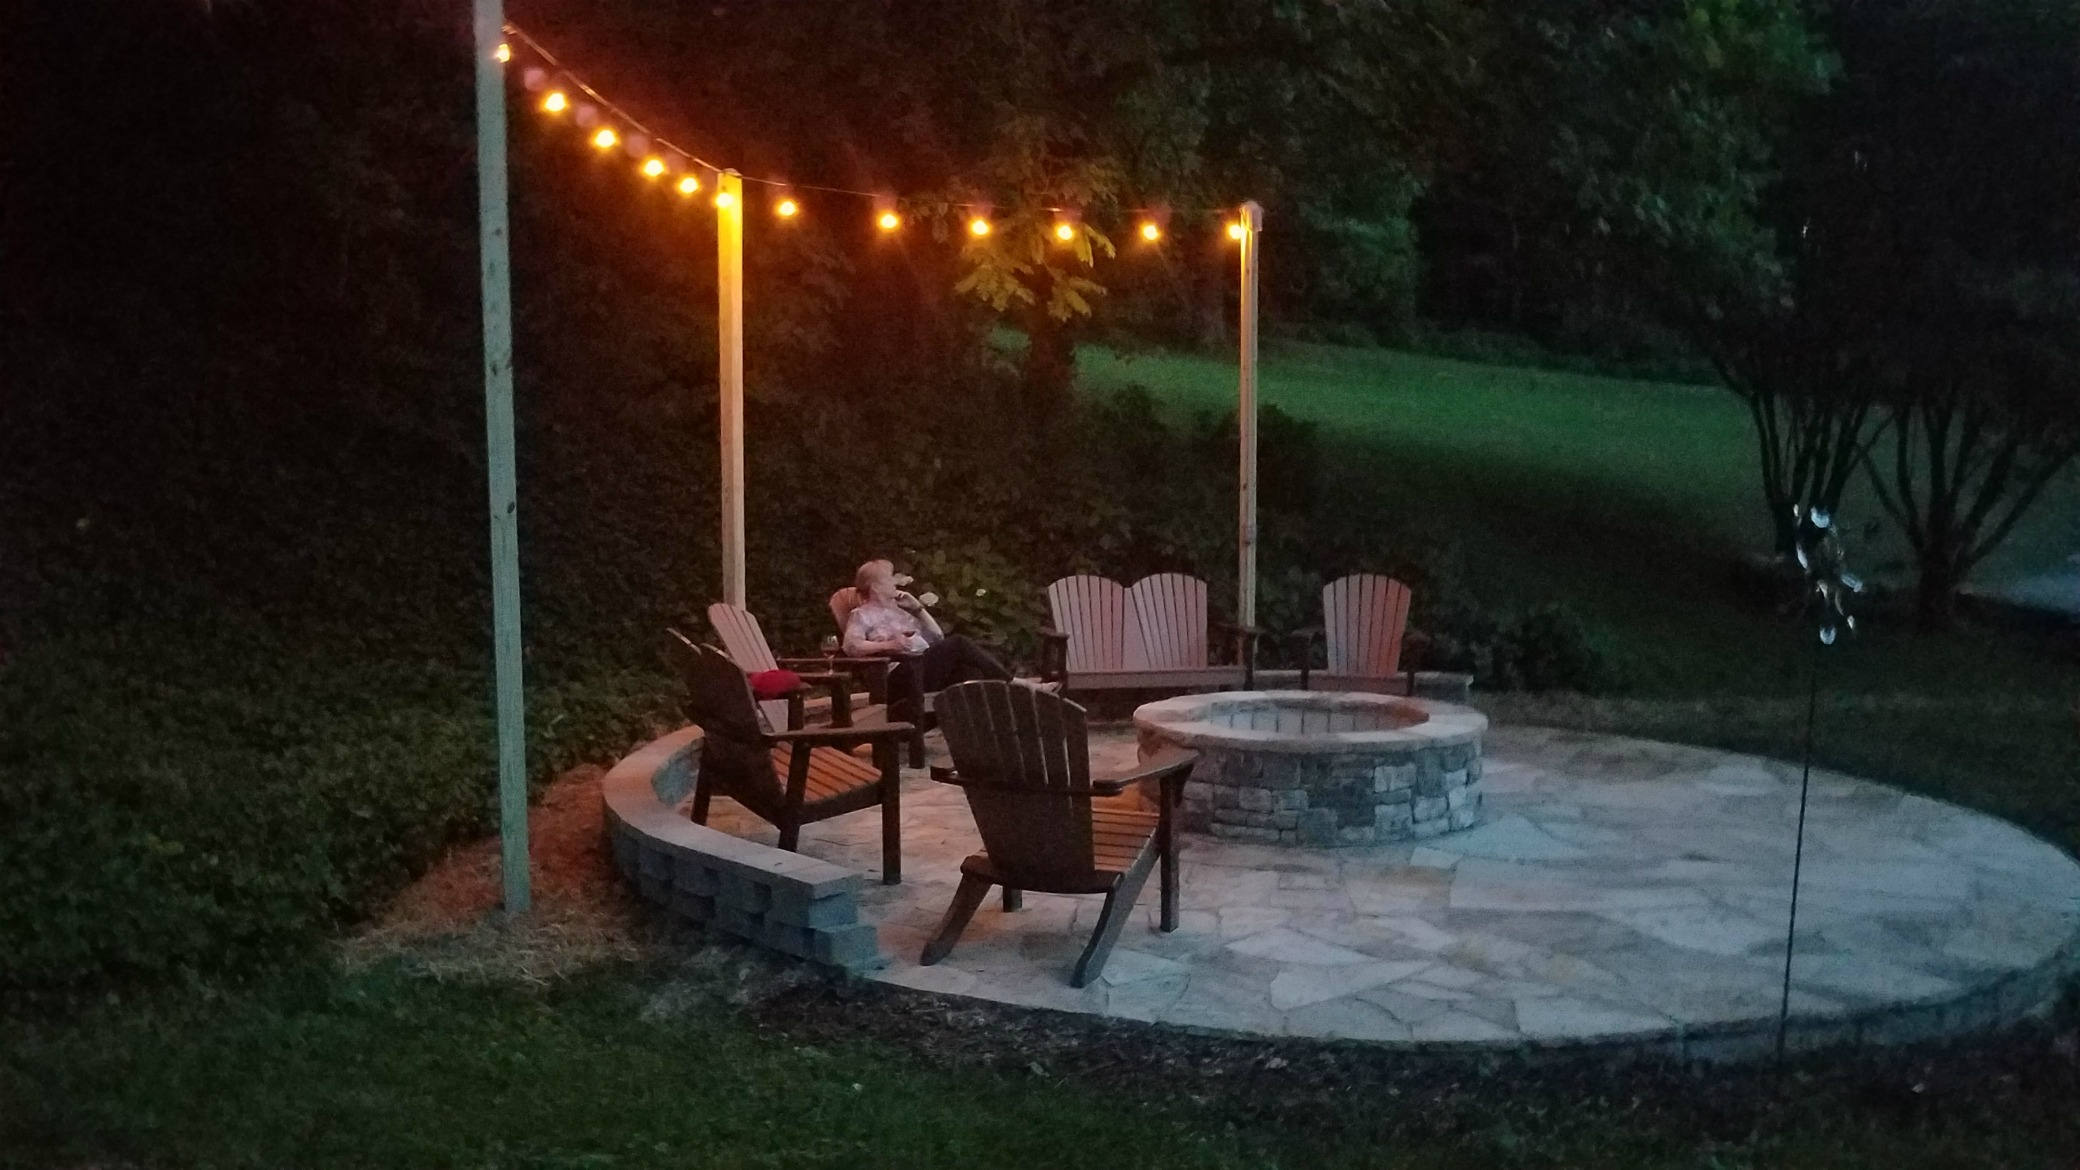 Our Fire Pit at Dusk